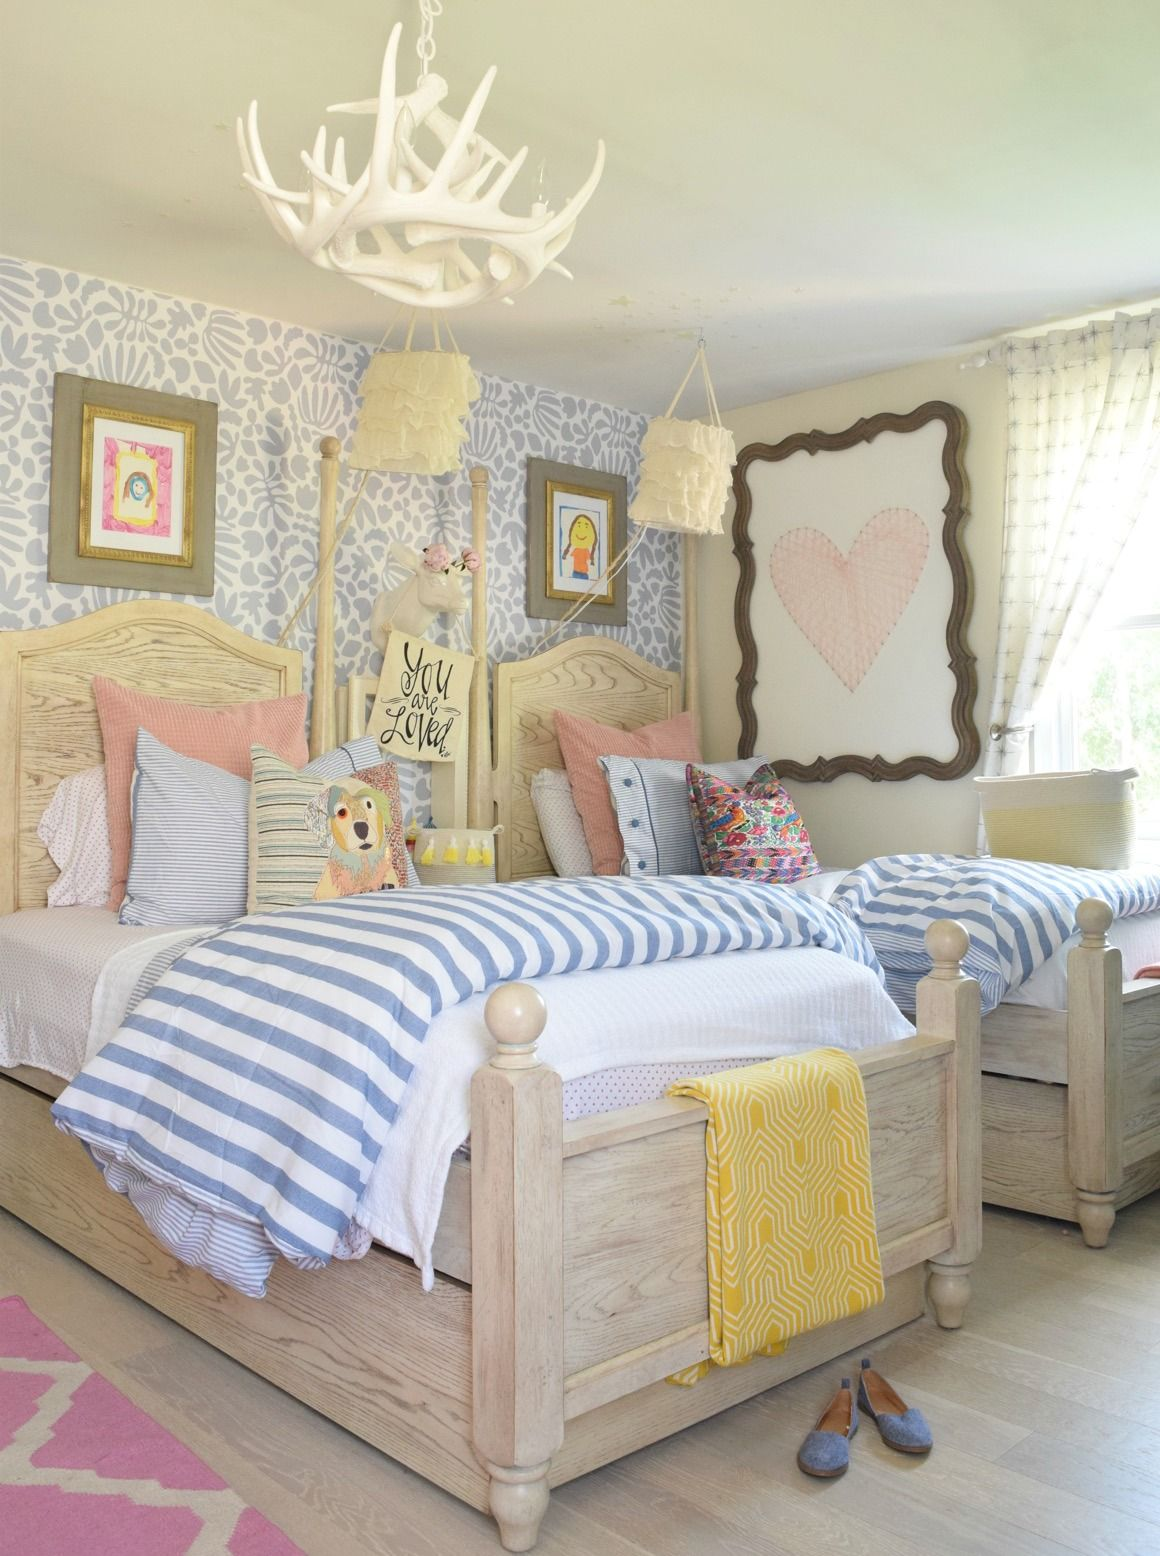 Dormitorios De Niña Decoracion Summer Home Tour And Seasonal Decor Changes Decoration